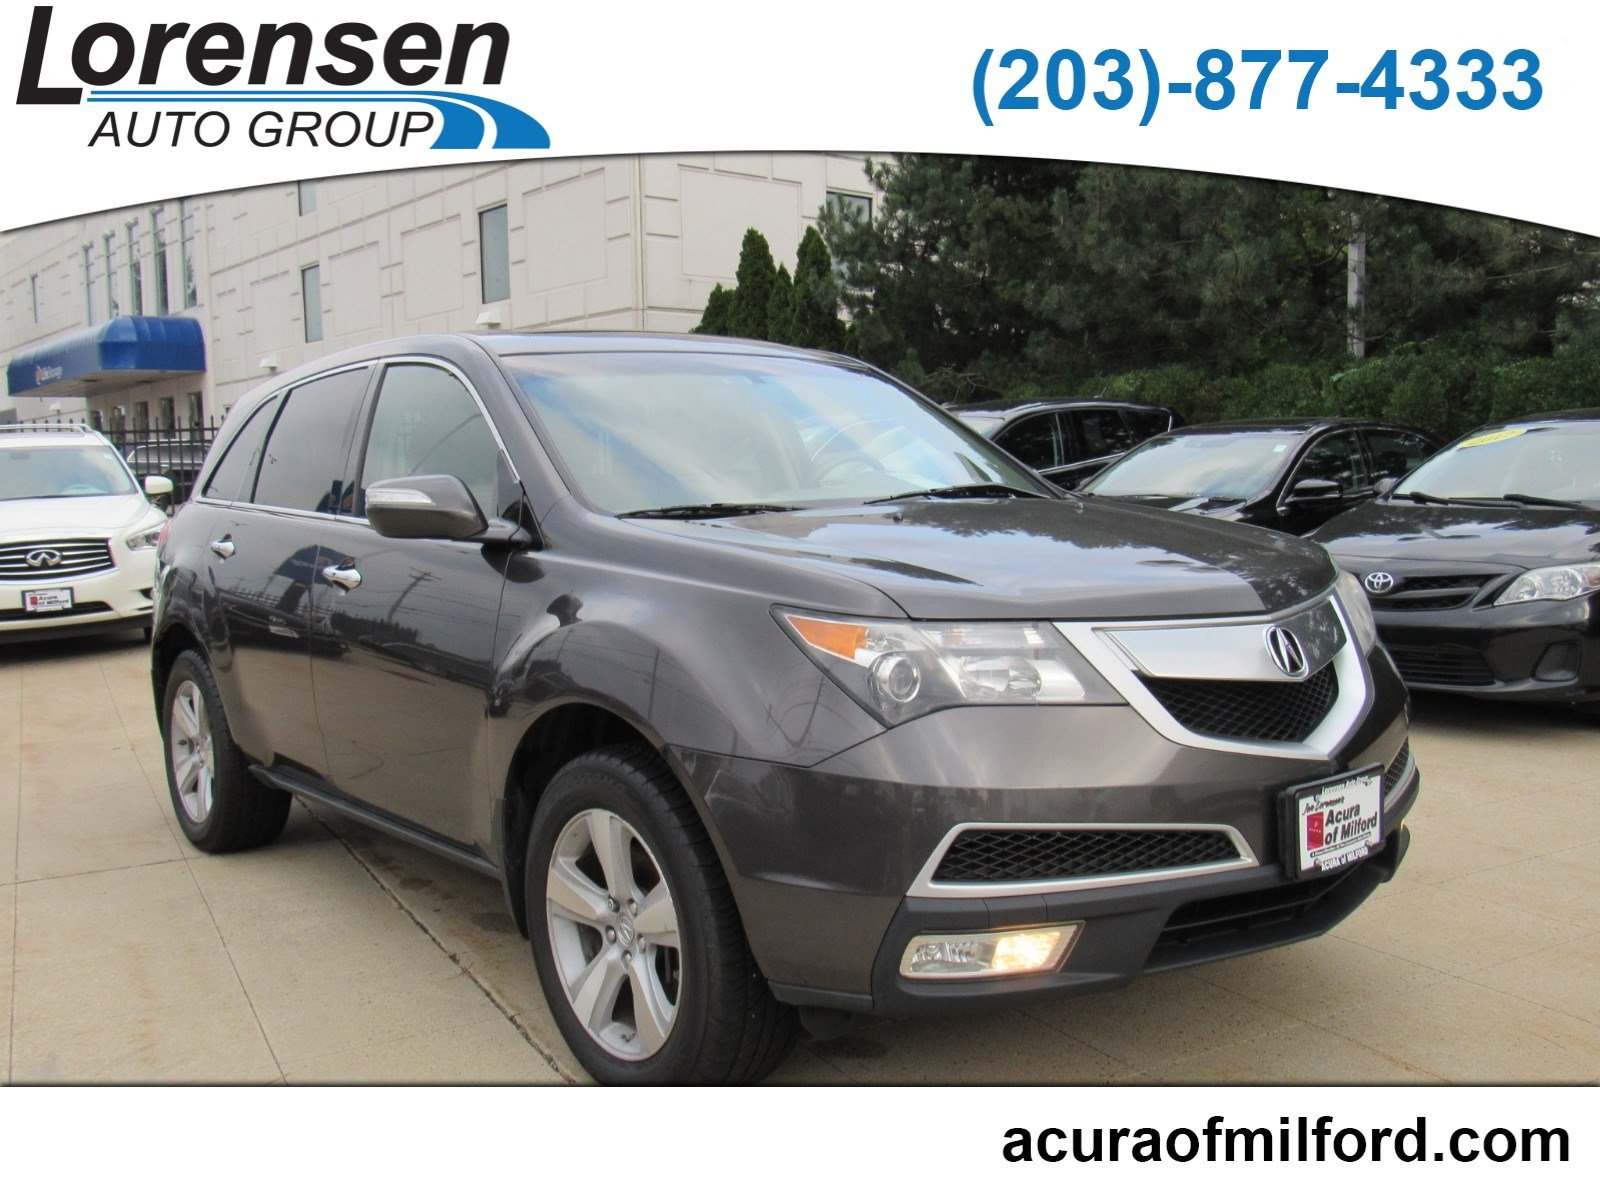 PreOwned Acura MDX Sport Utility In Westbrook X - Acura mdx pre owned